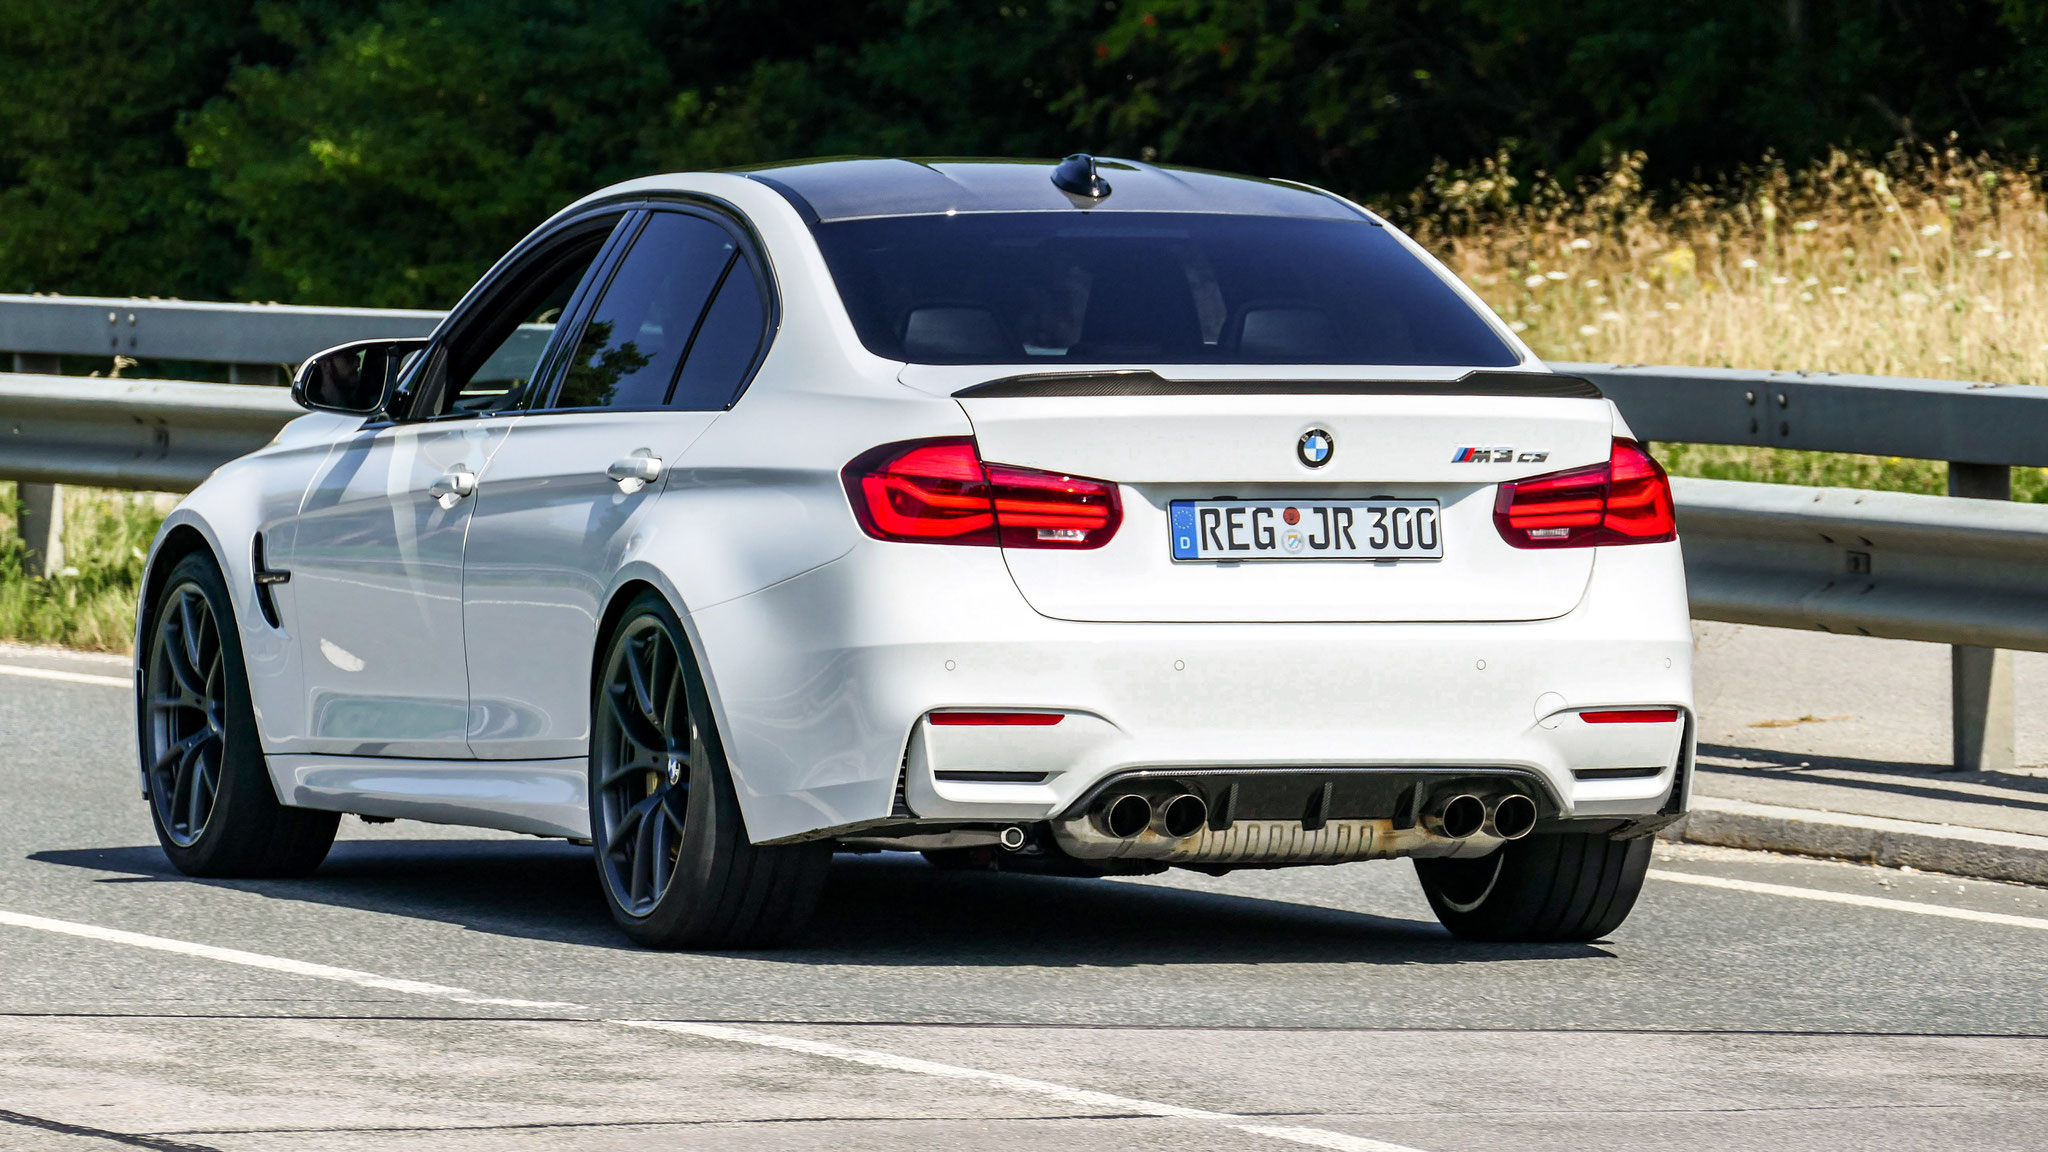 BMW M3 CS - REG-JR-300